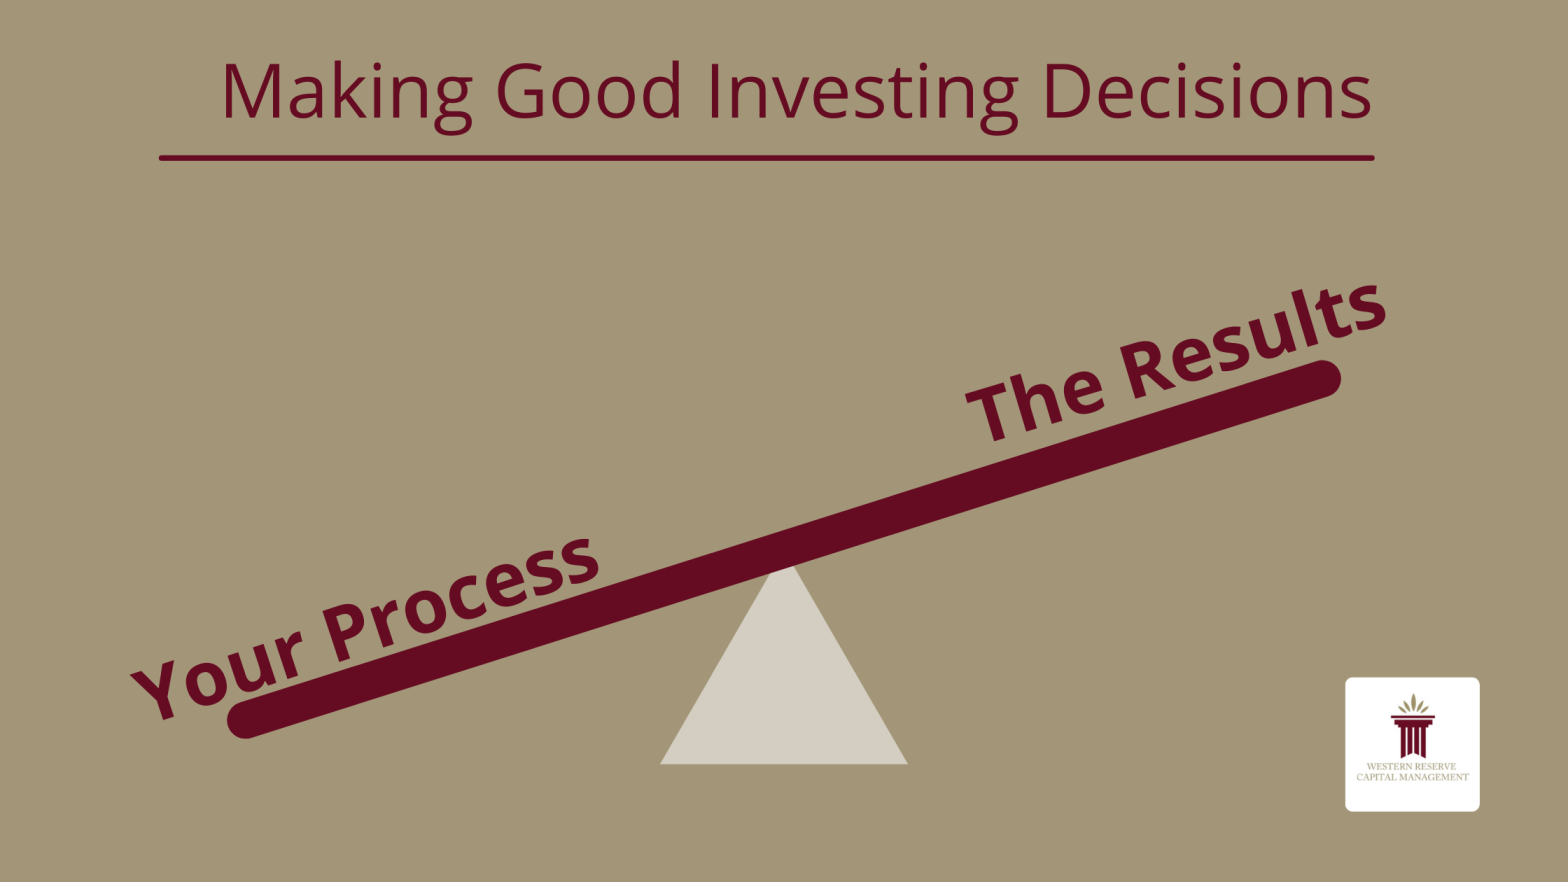 Making Good Investing Decisions